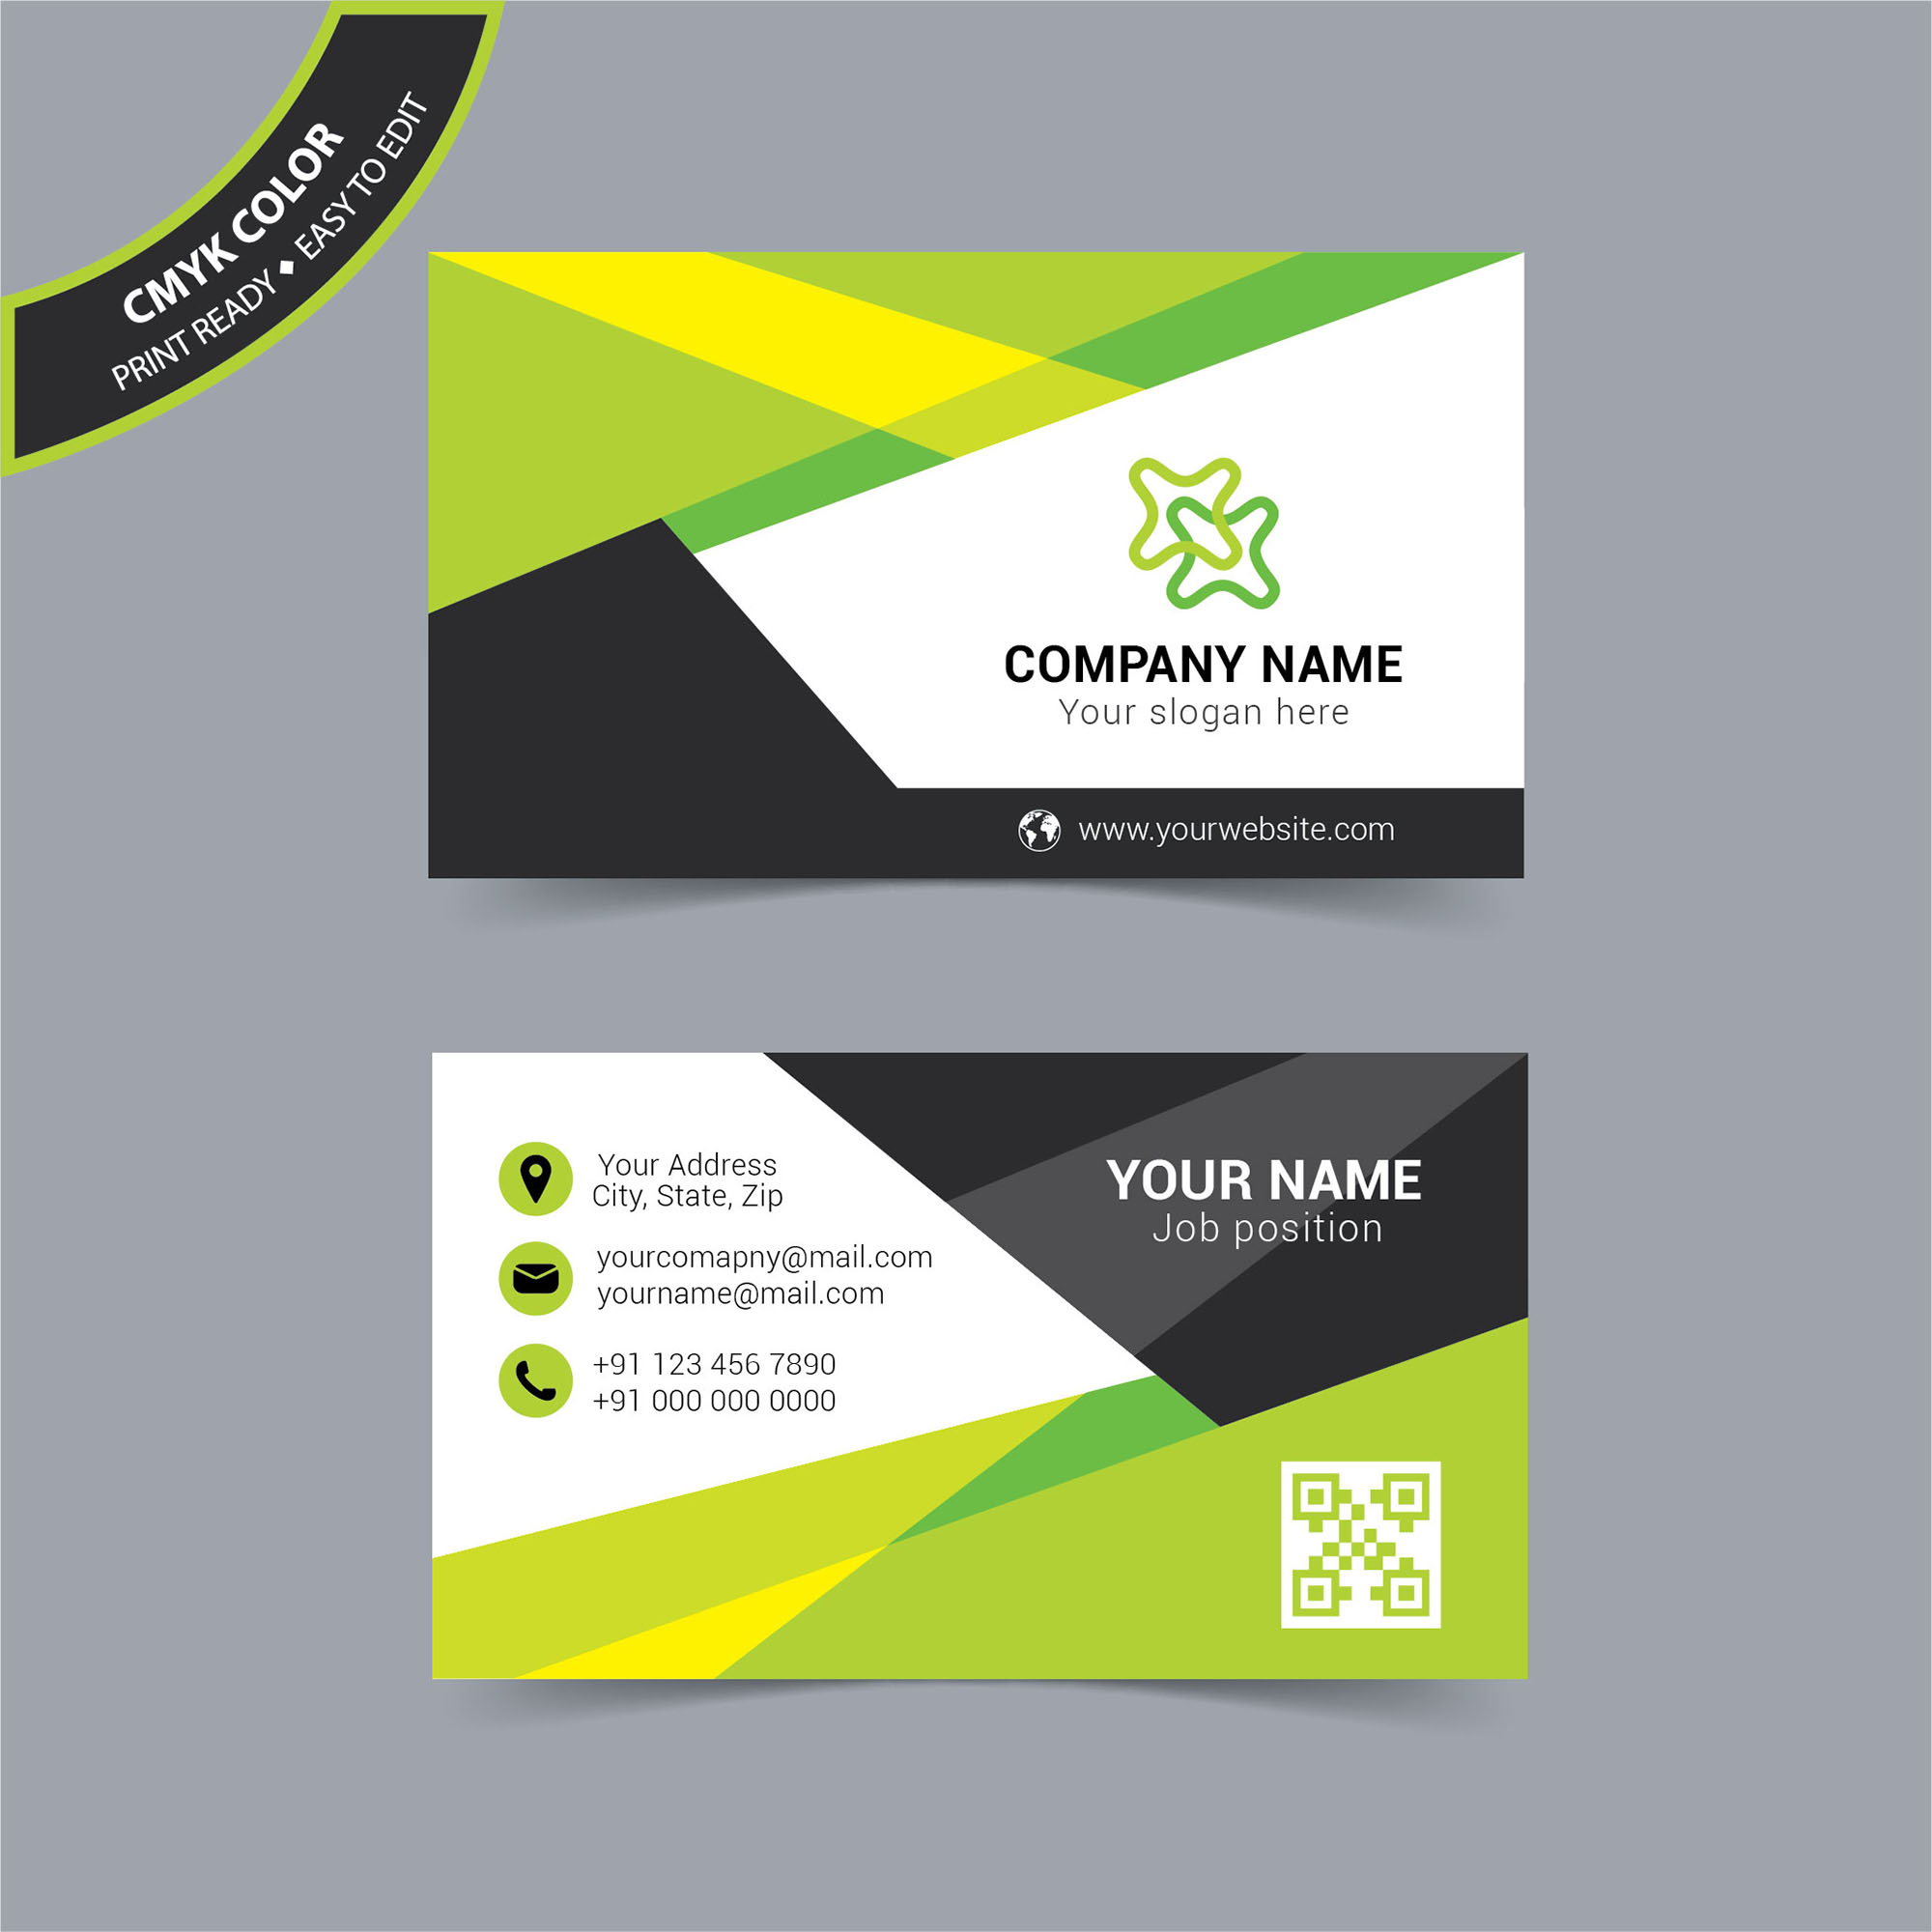 Modern colorful business card design free download wisxi business card business cards business card design business card template design templates wajeb Images